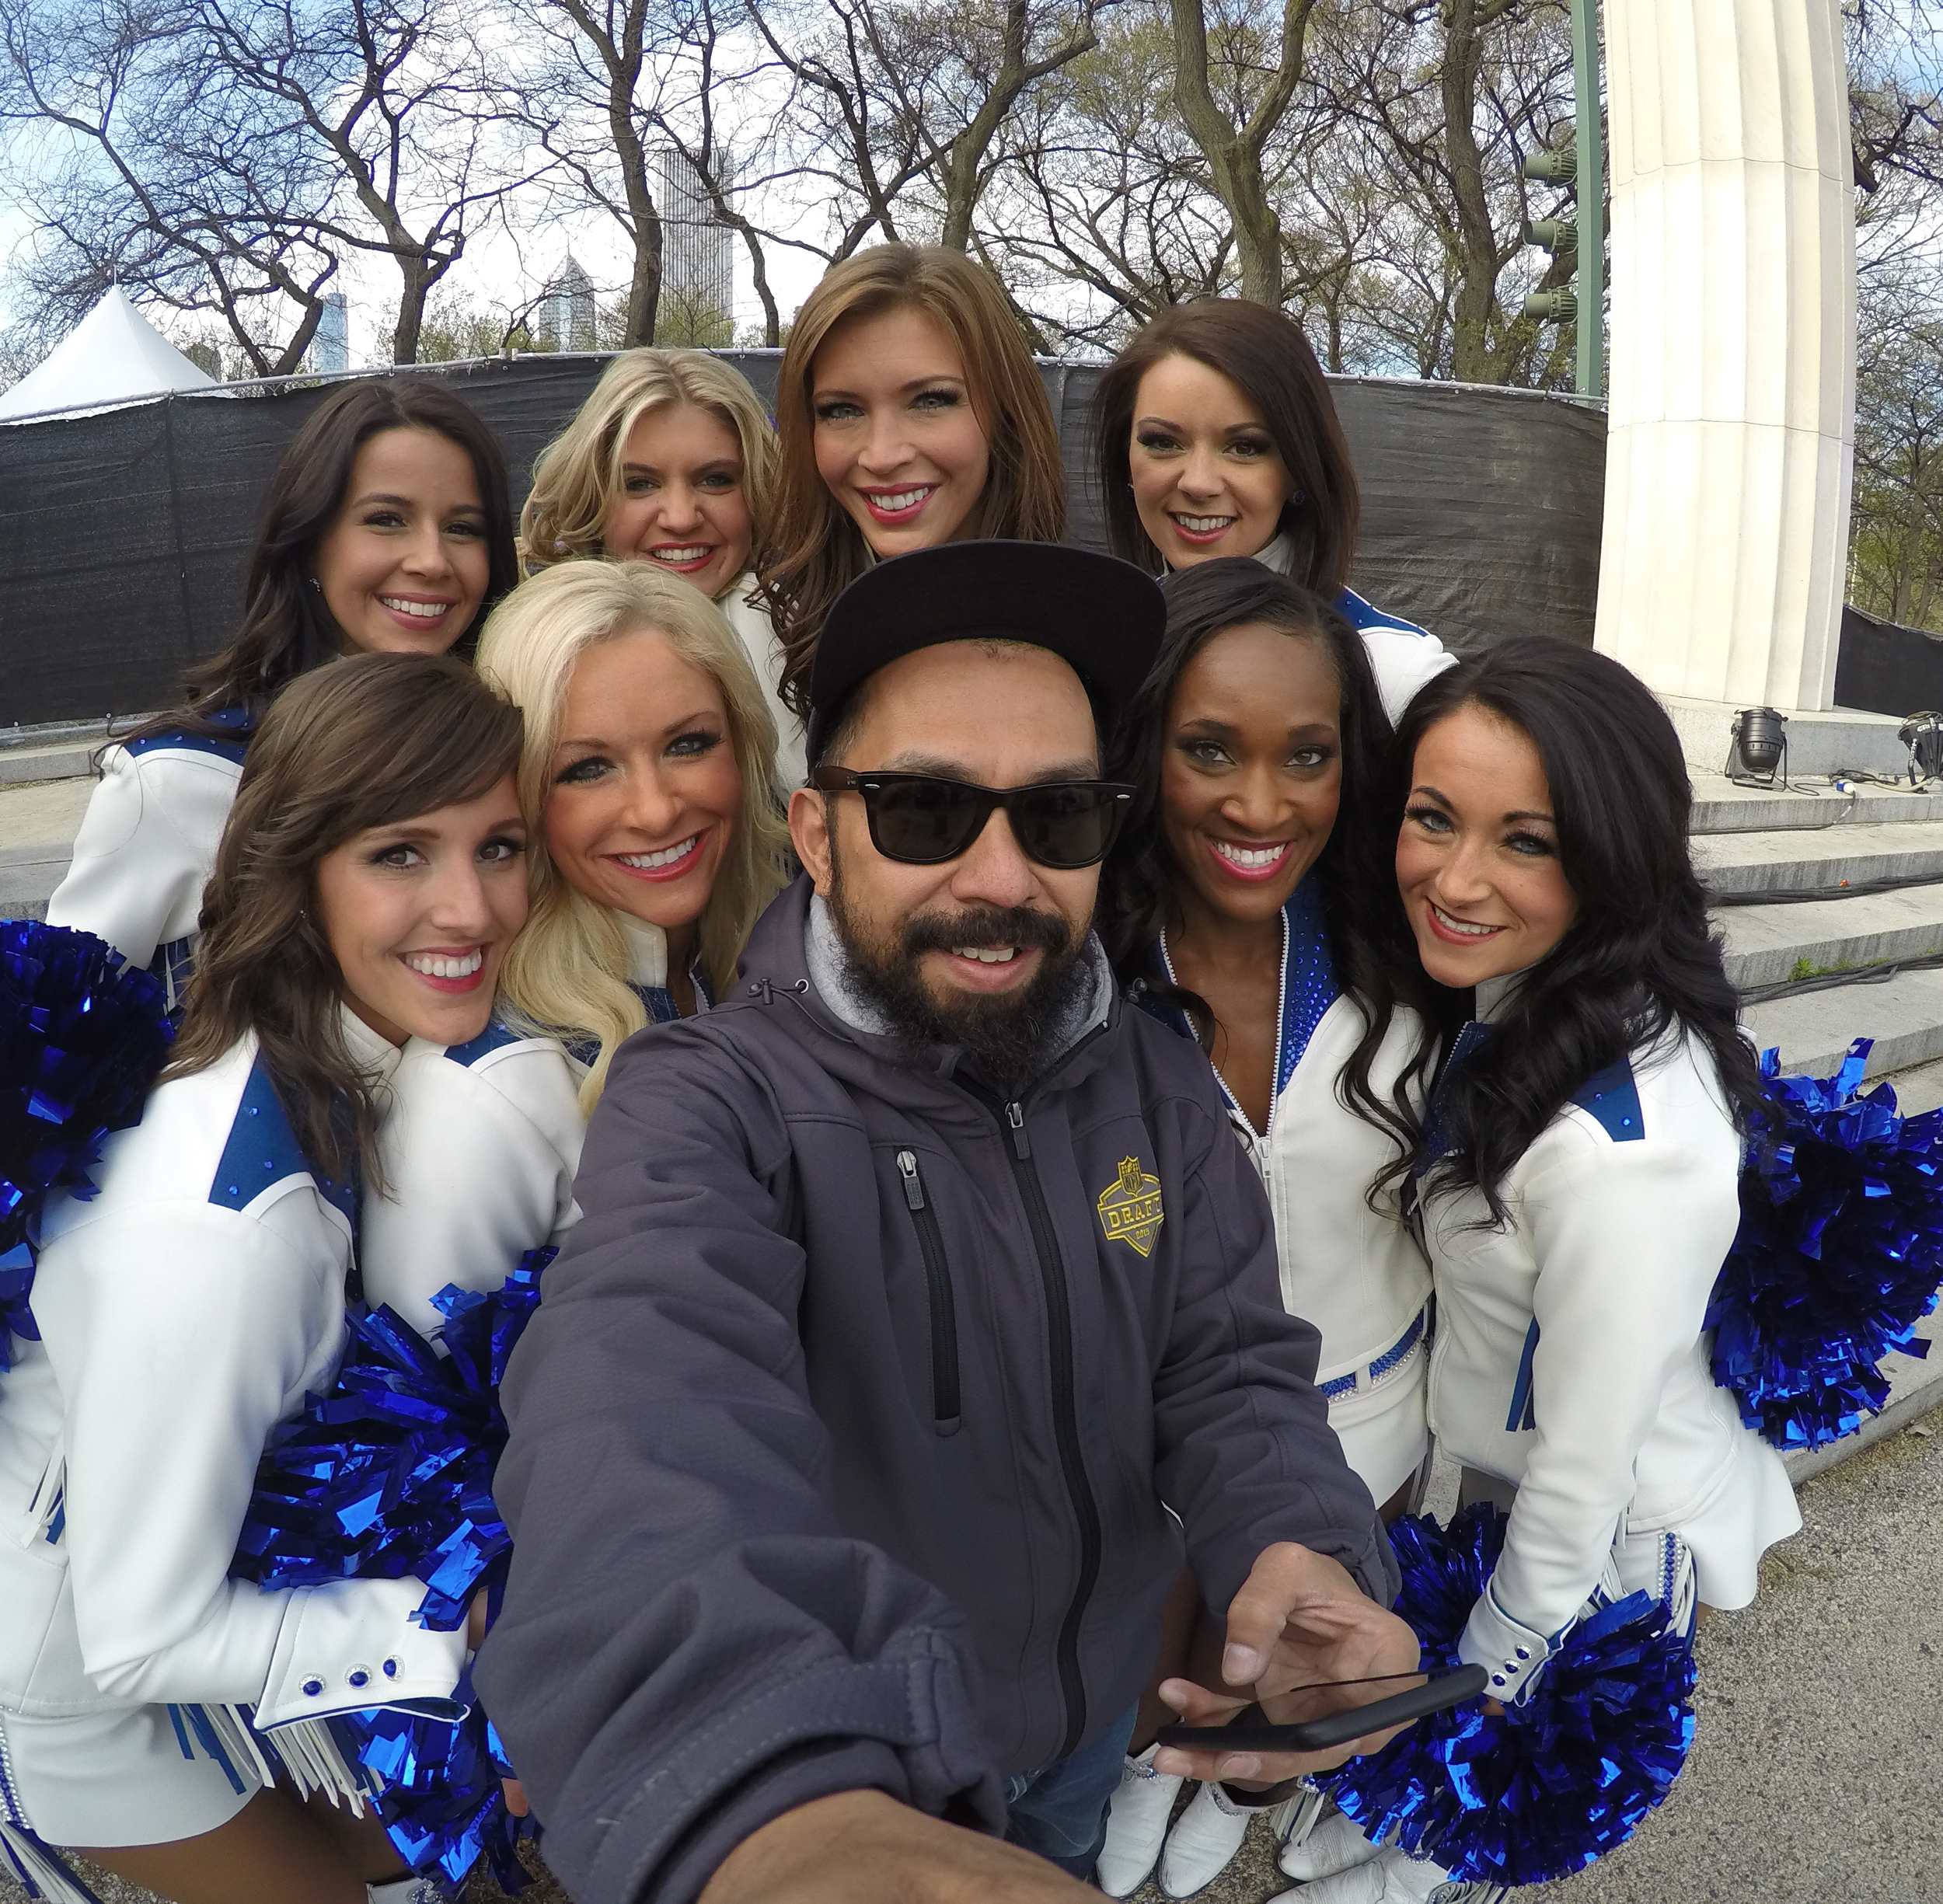 2015 NFL Draft with the Indianapolis Colts Cheerleaders - Chicago - May 2015